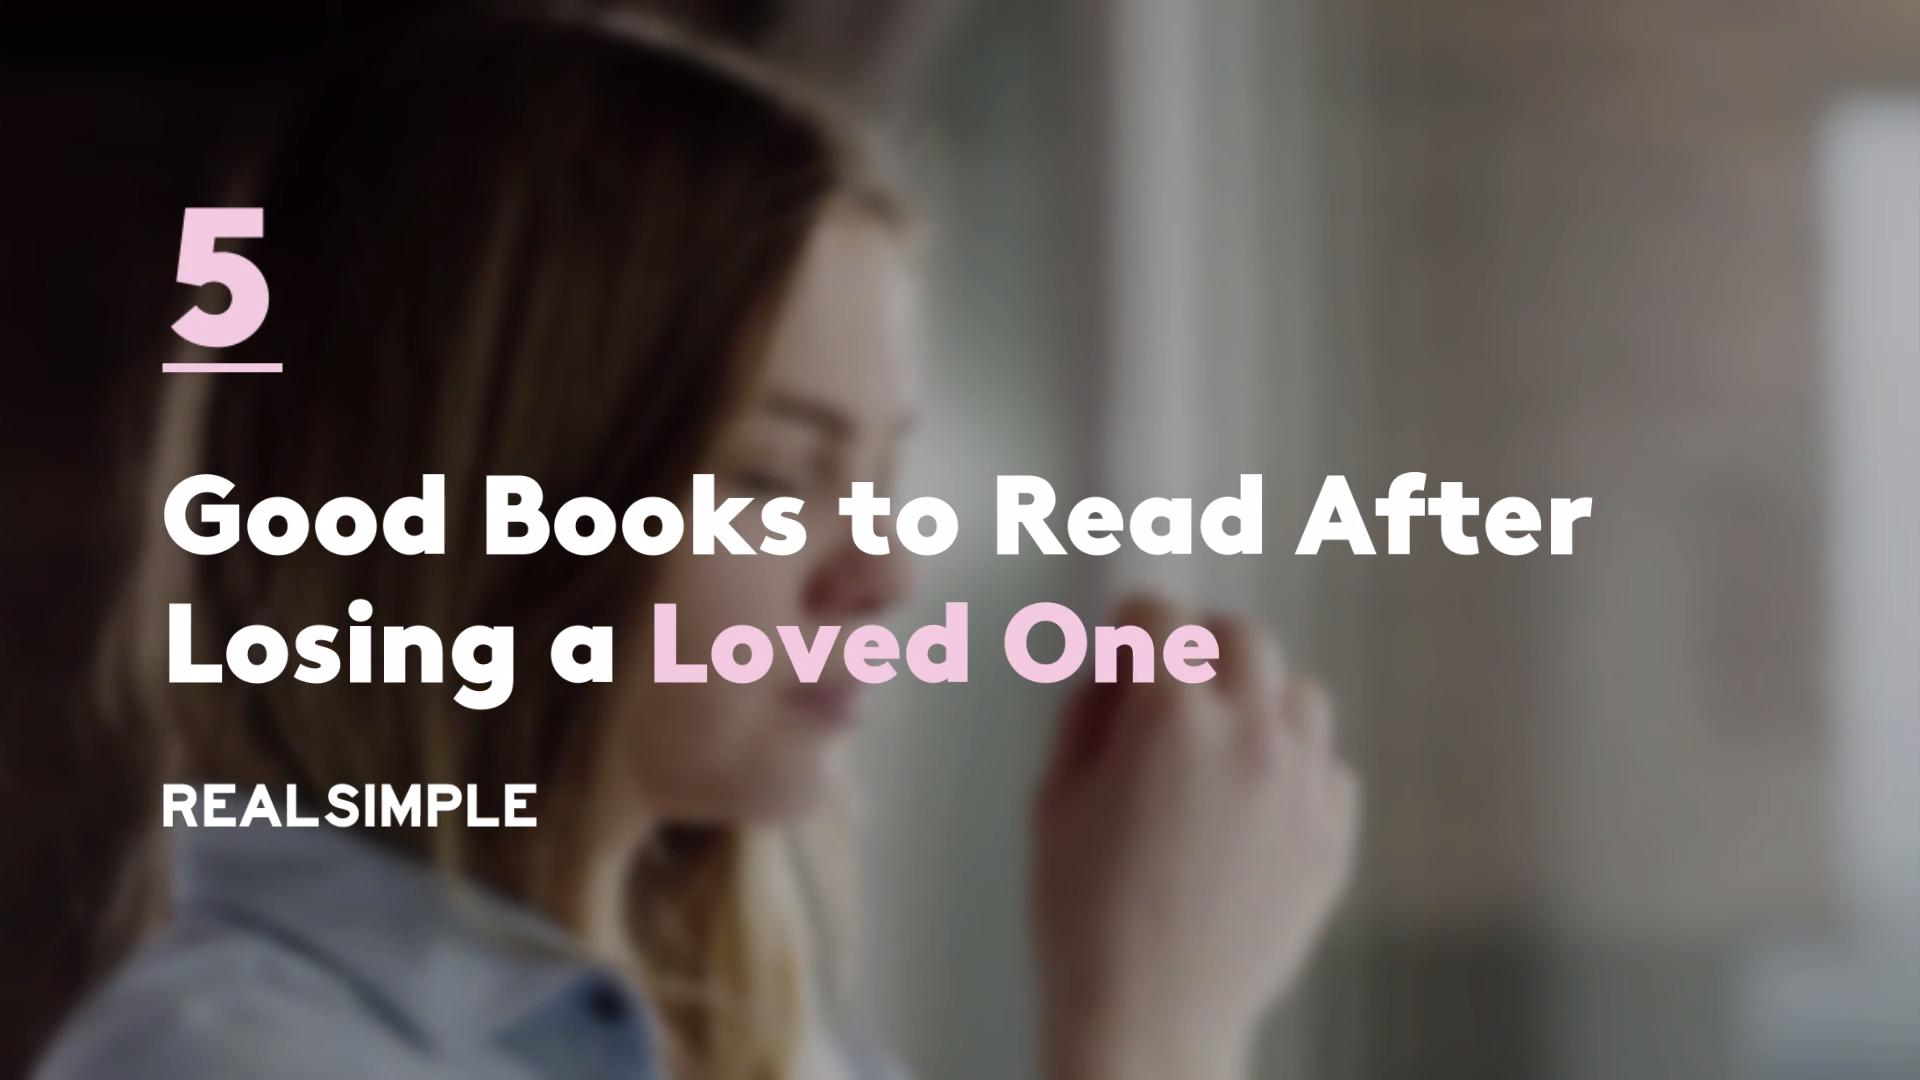 5 Good Books to Read After Losing a Loved One